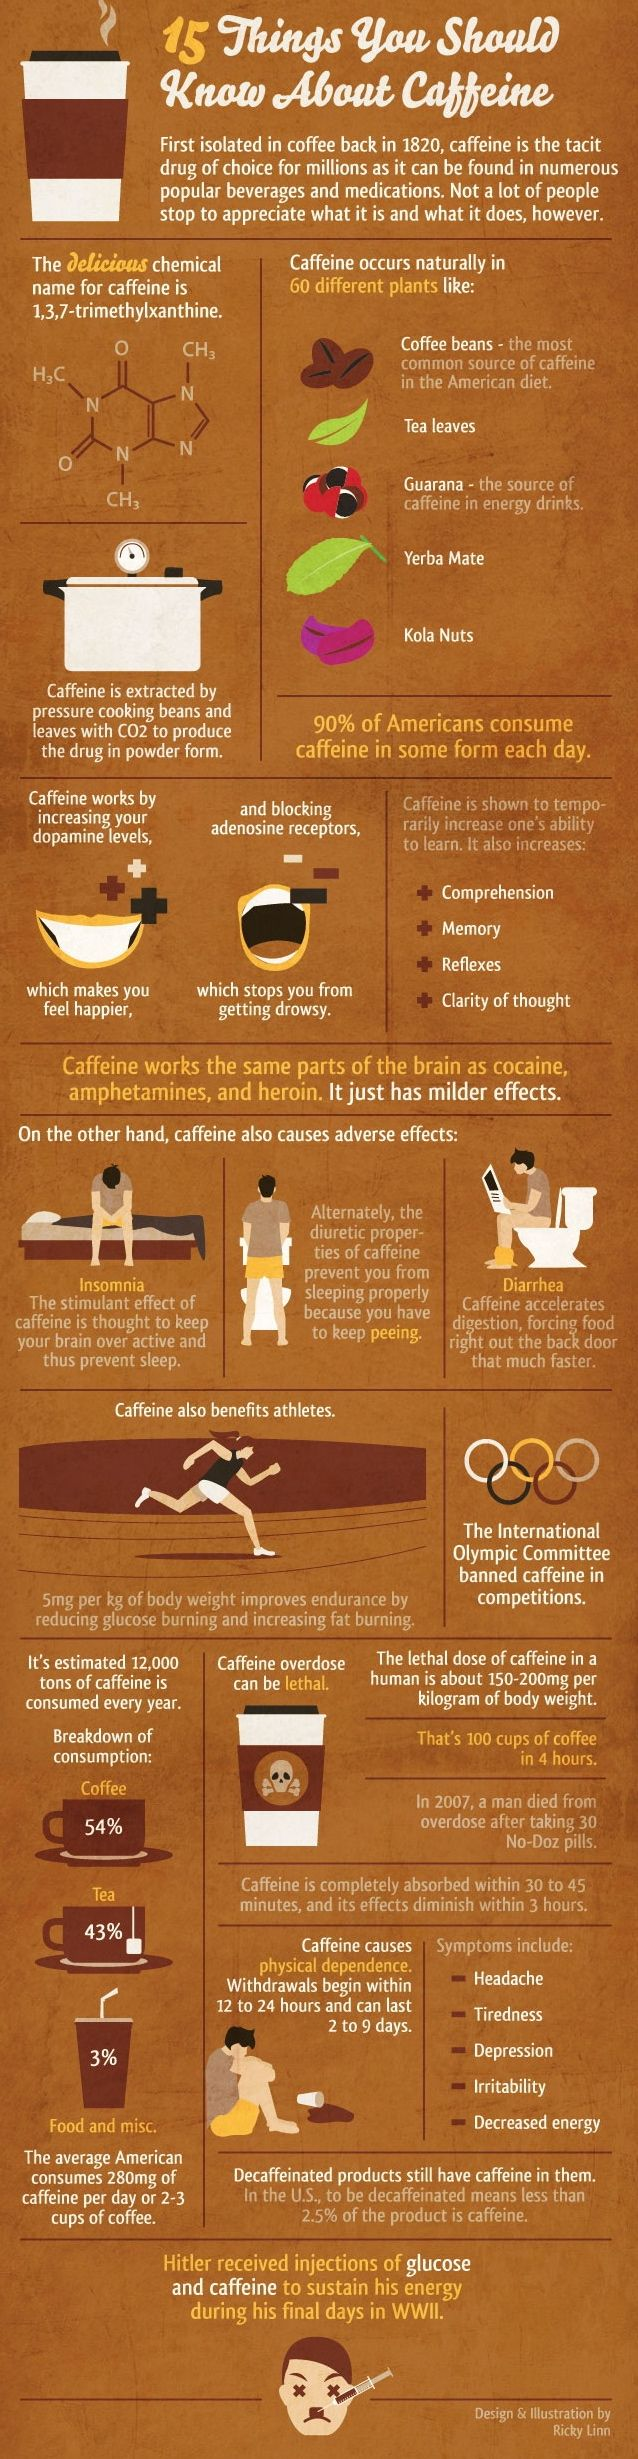 The Negative Effects From Caffeine & Caffeine  #Personaltrainer #Fitness #Weightloss #Dieting #Health #Fitness #personal #trainer #training #Gym #Workout #weight-loss